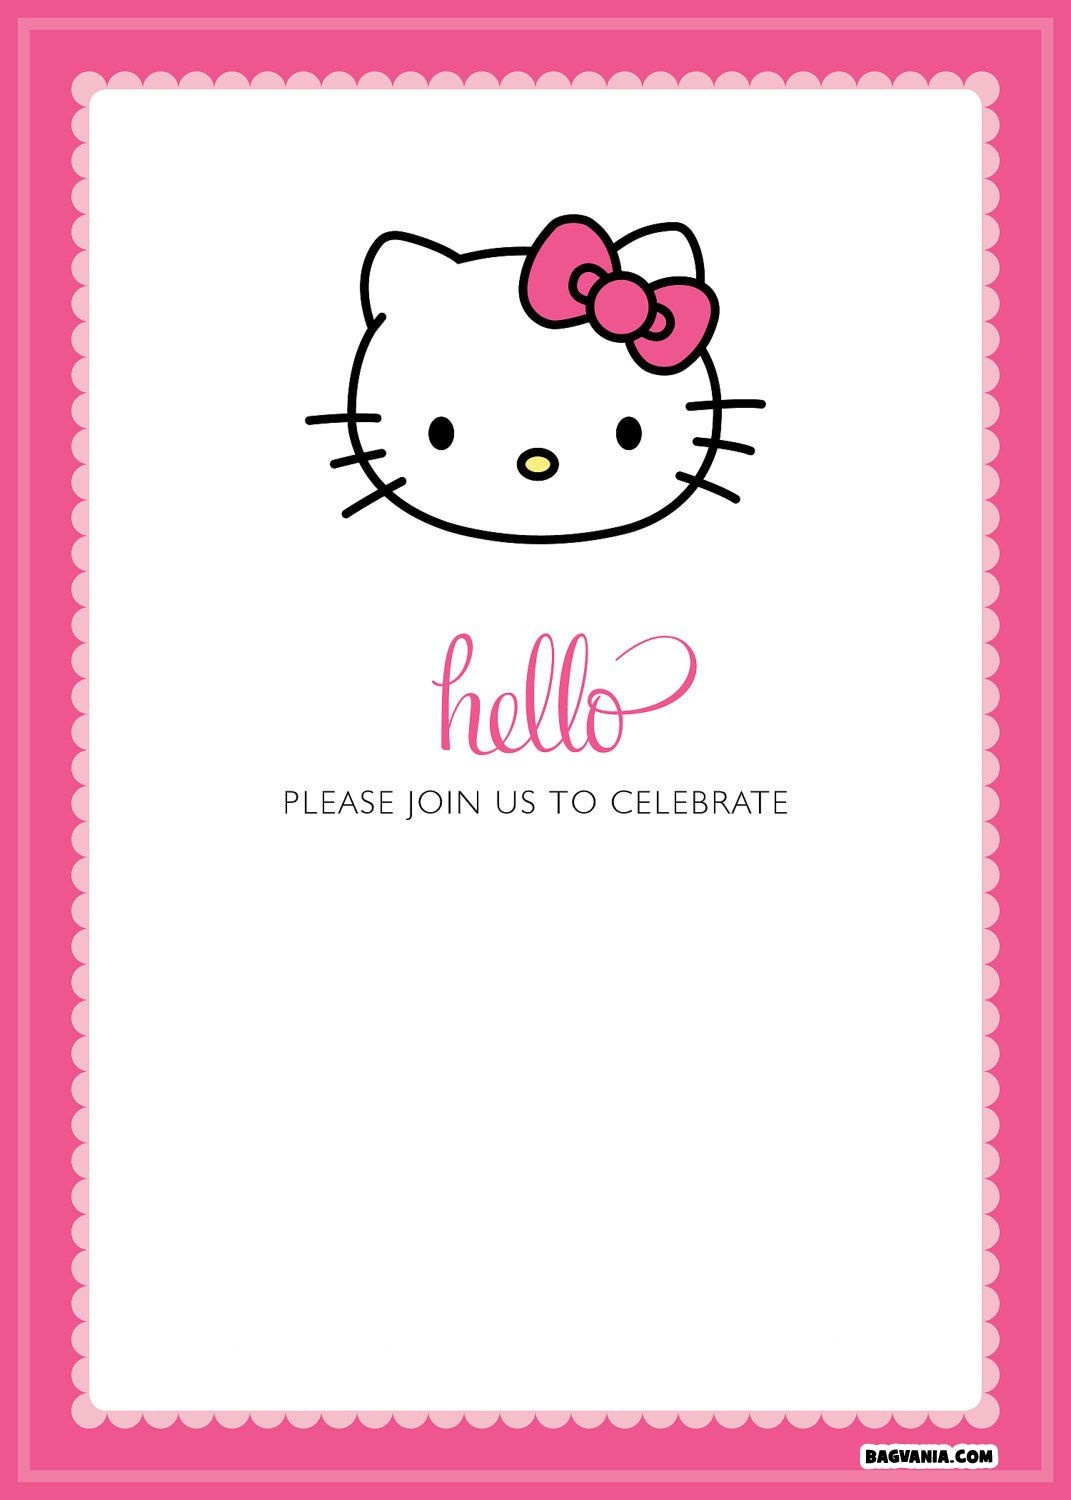 Free Printable Hello Kitty Birthday Invitations – Bagvania Free - Hello Kitty Labels Printable Free